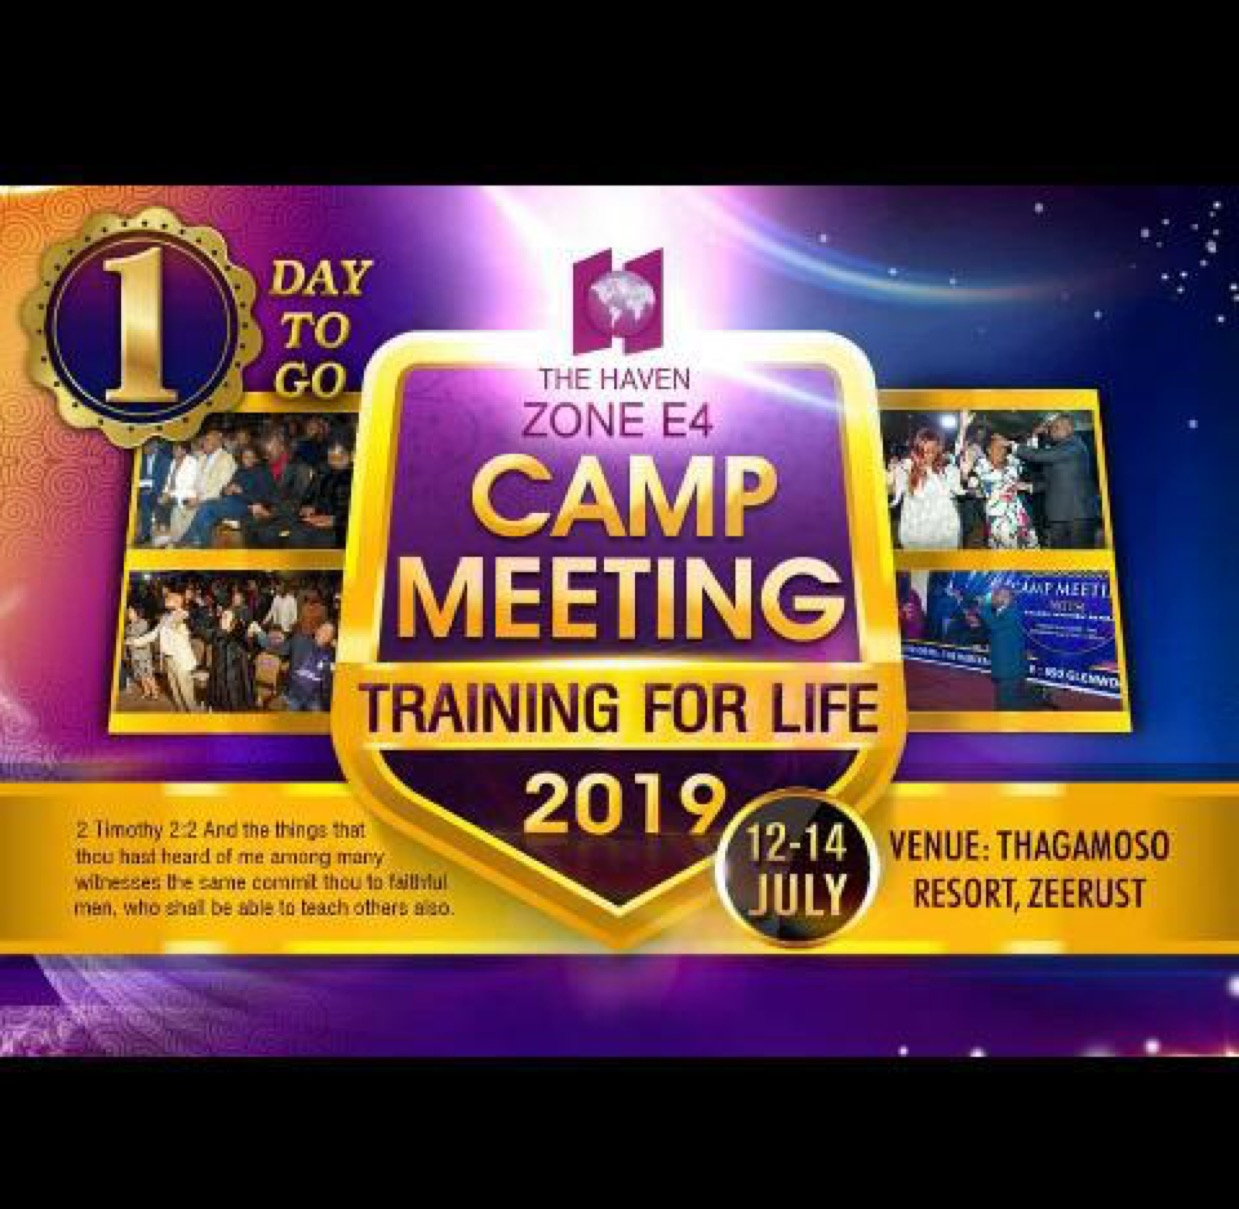 #Thehavennation #CESouthernAfrica #Campmeeting #Zo